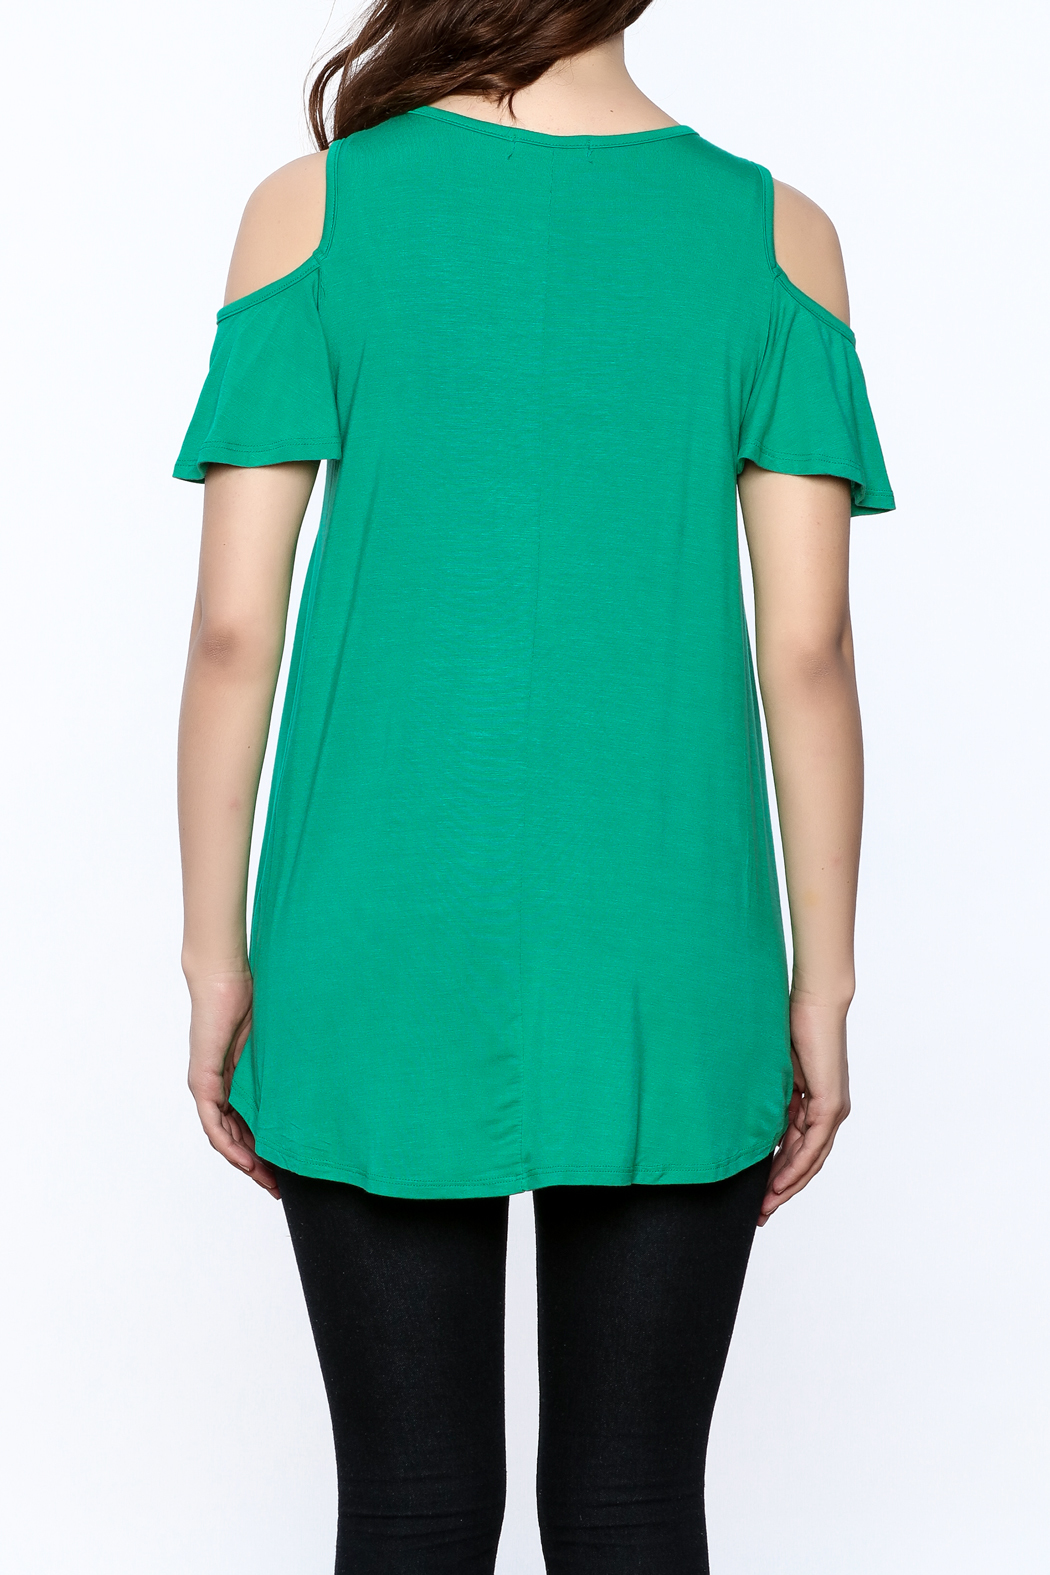 Reborn J Green Tunic Top - Back Cropped Image